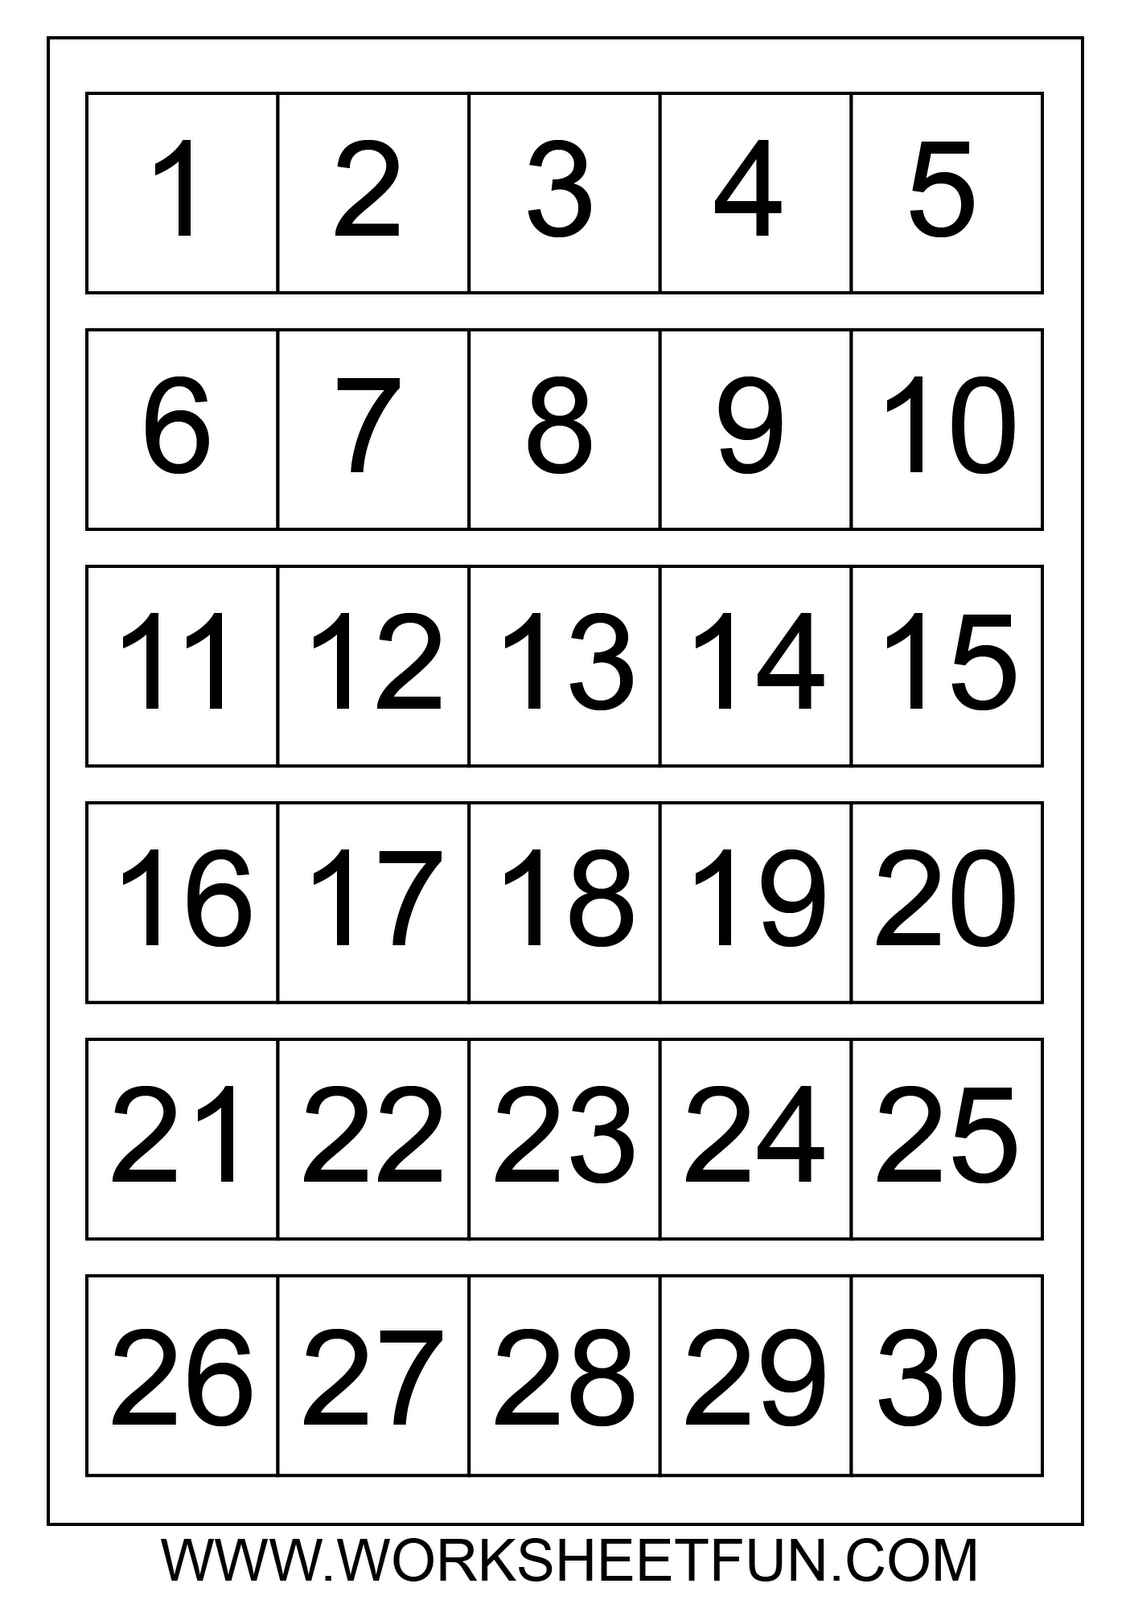 Awesome 1 31 Numbers - Saborame